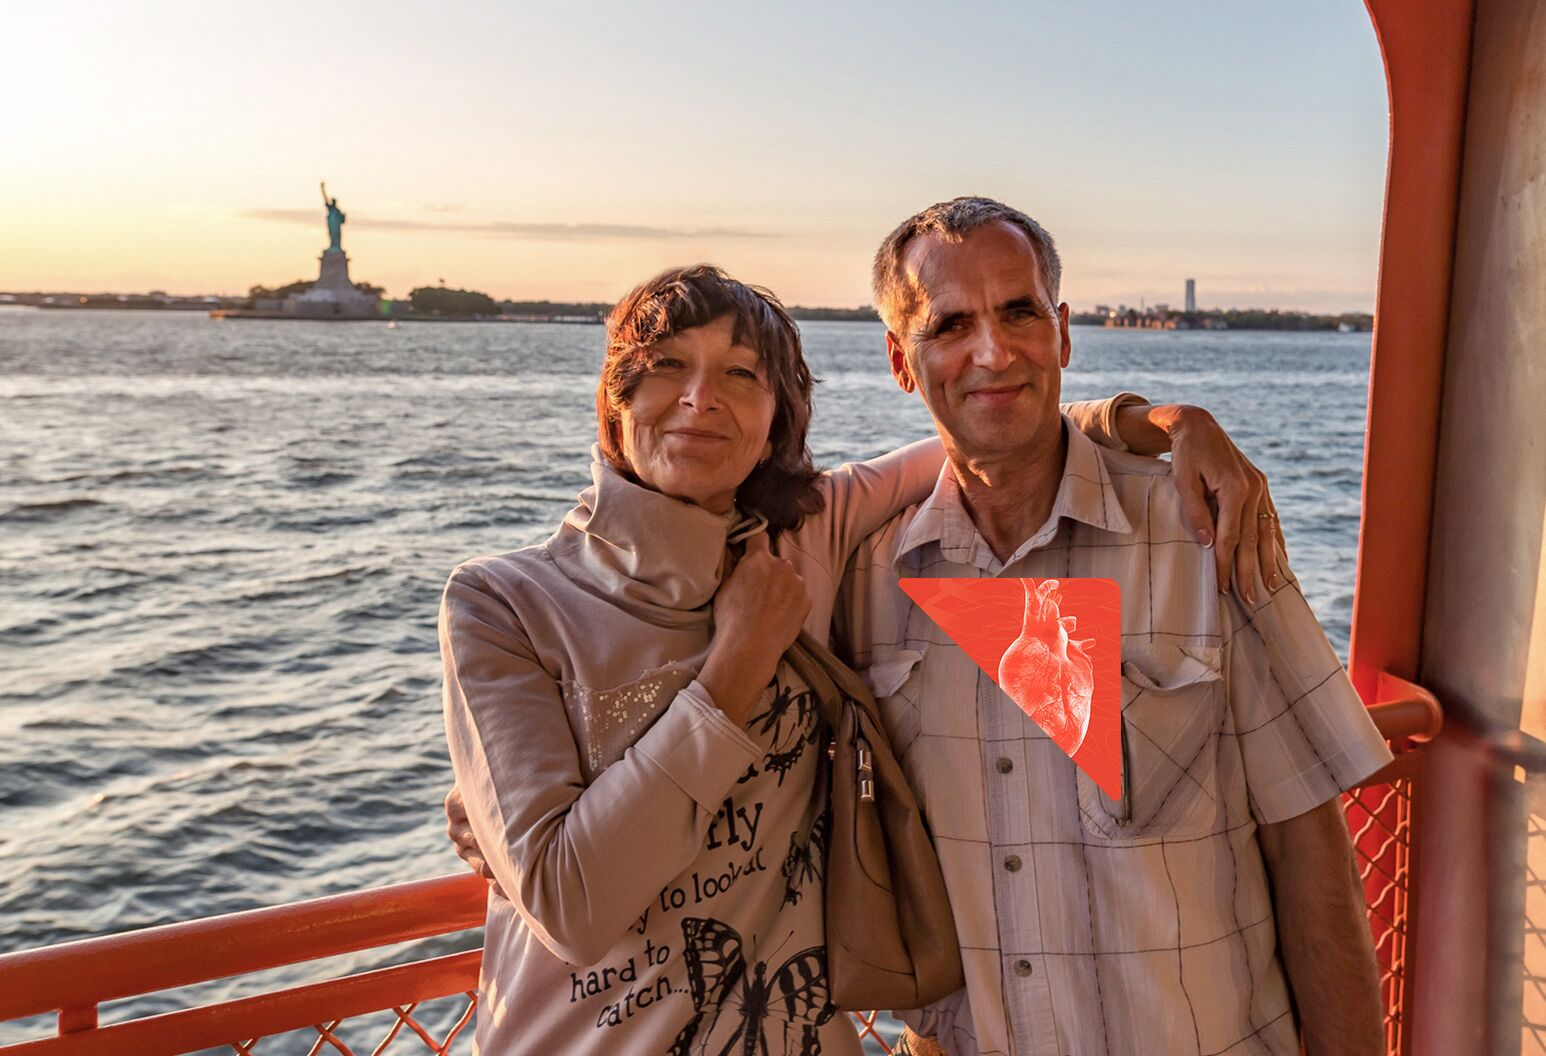 Woman with arm around man, standing on ferry near statue of liberty